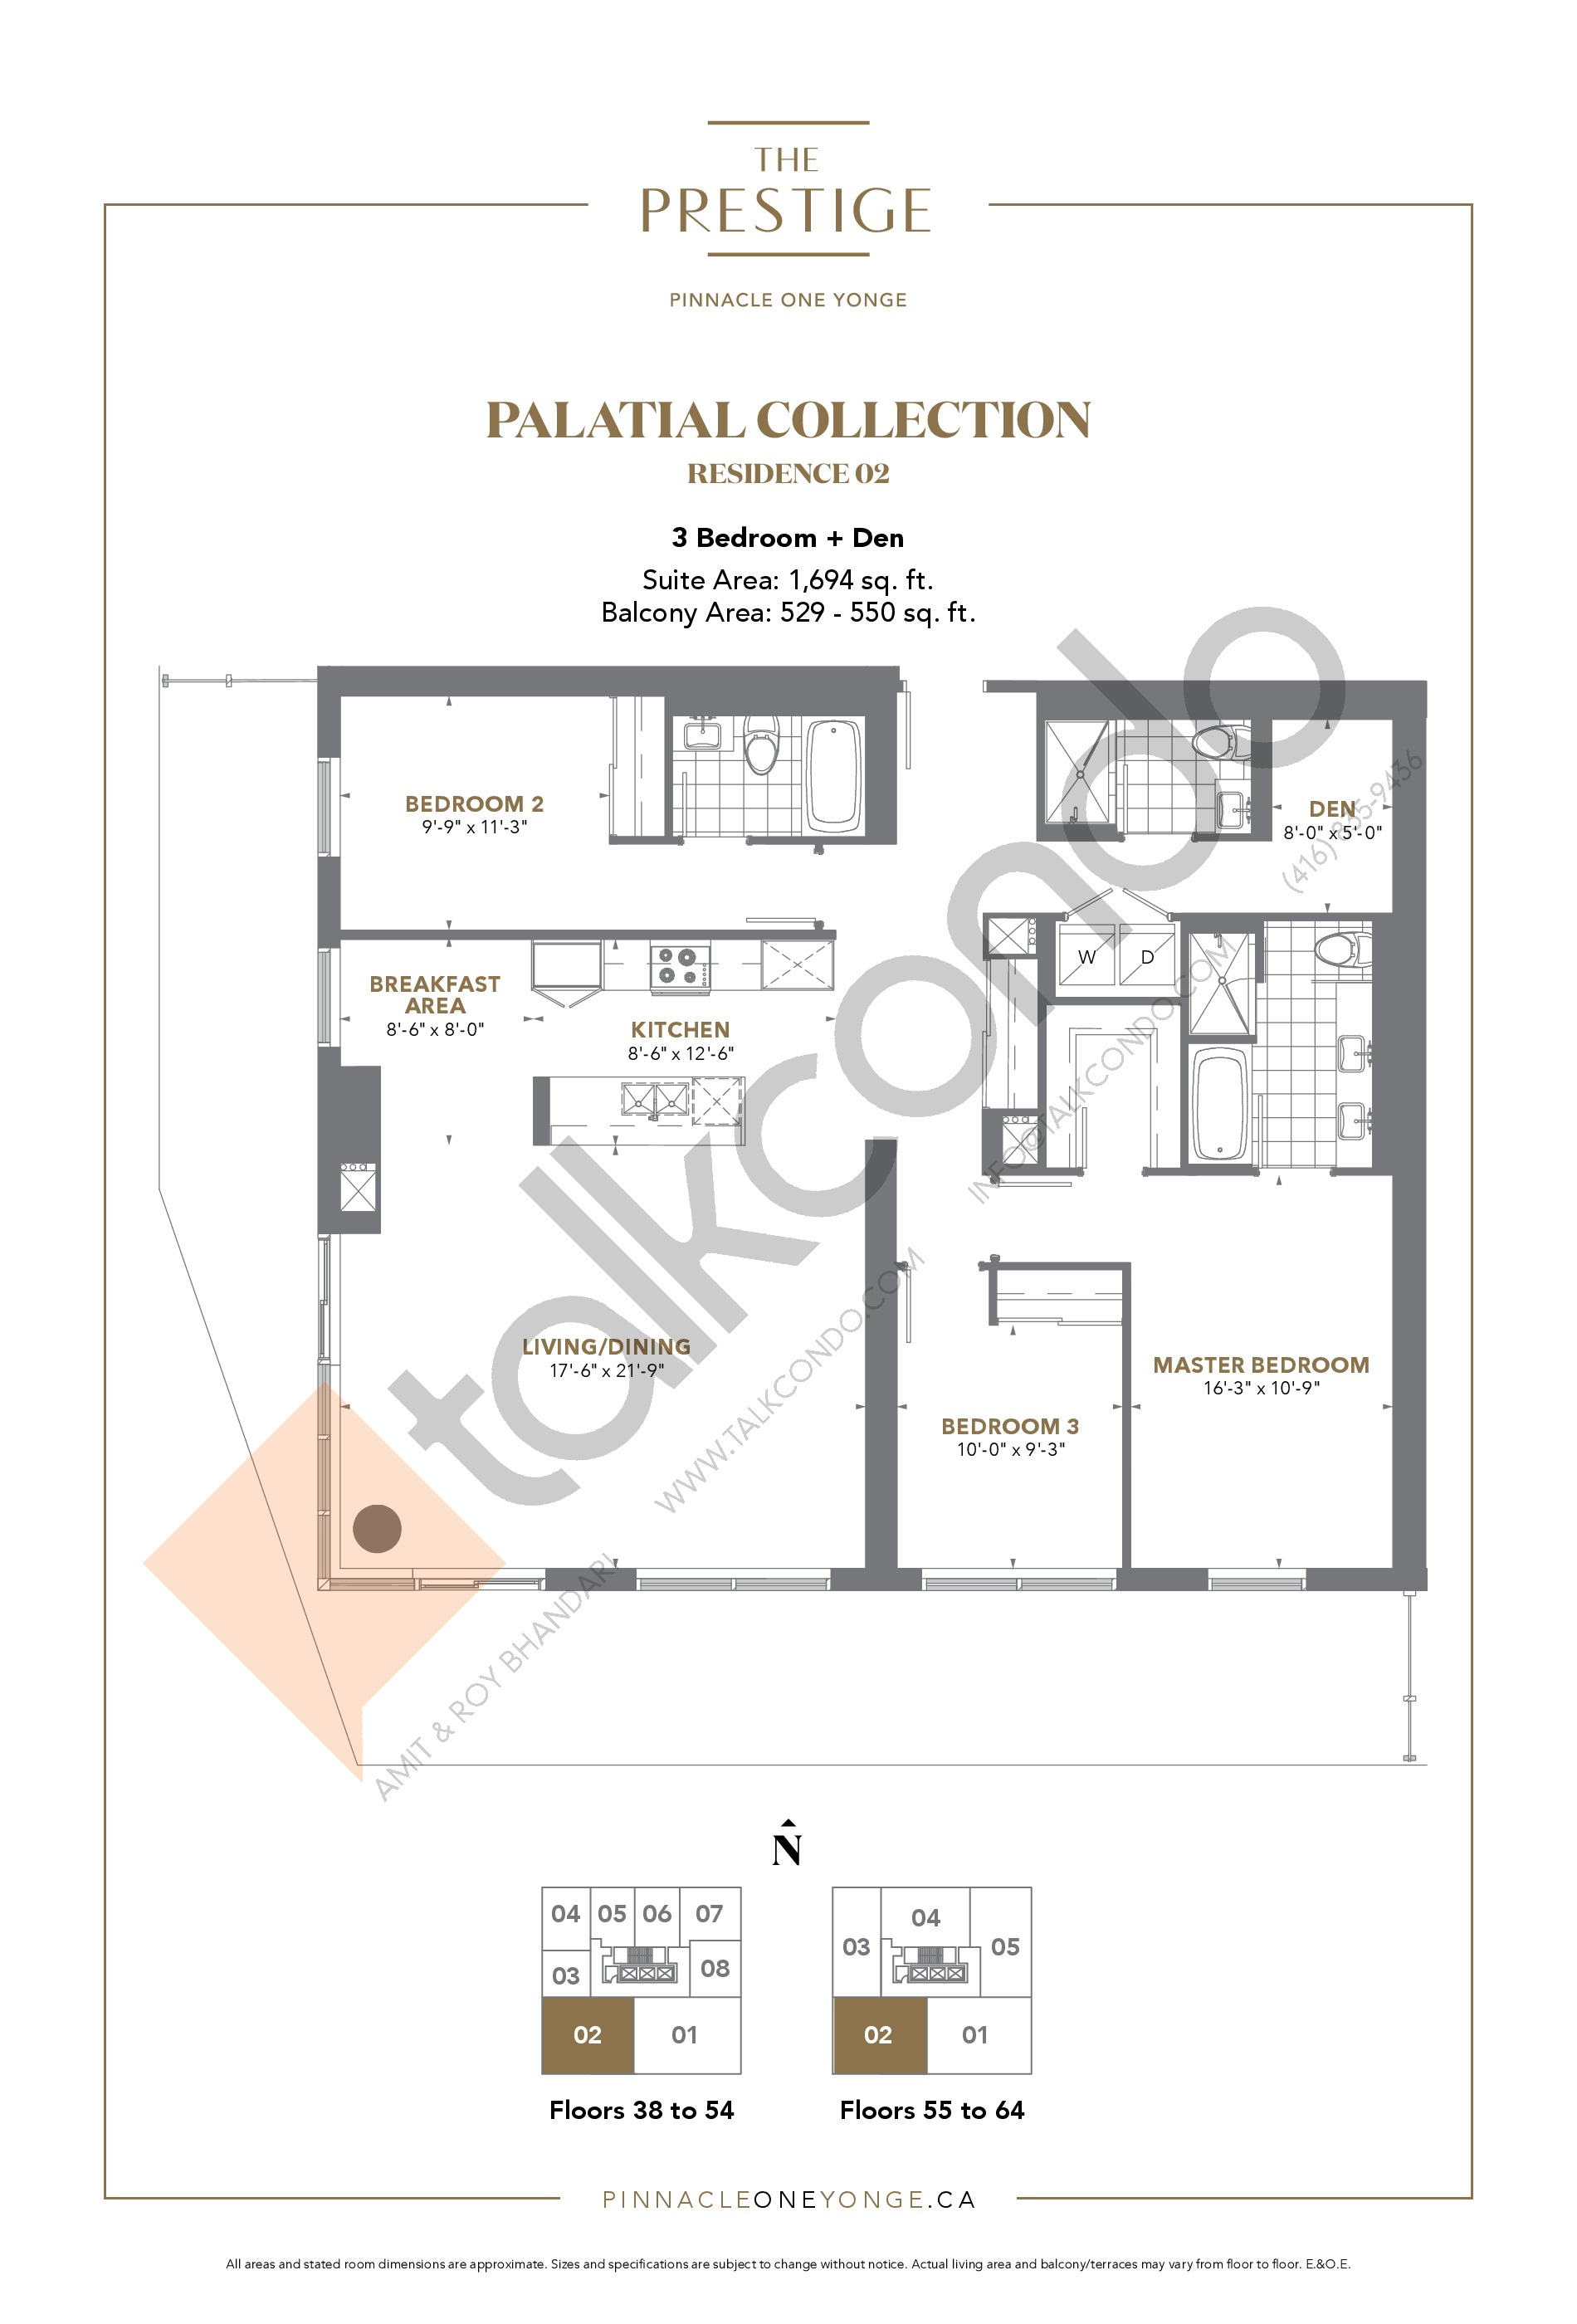 Palatial Collection - Residence 02 Floor Plan at The Prestige Condos at Pinnacle One Yonge - 1694 sq.ft